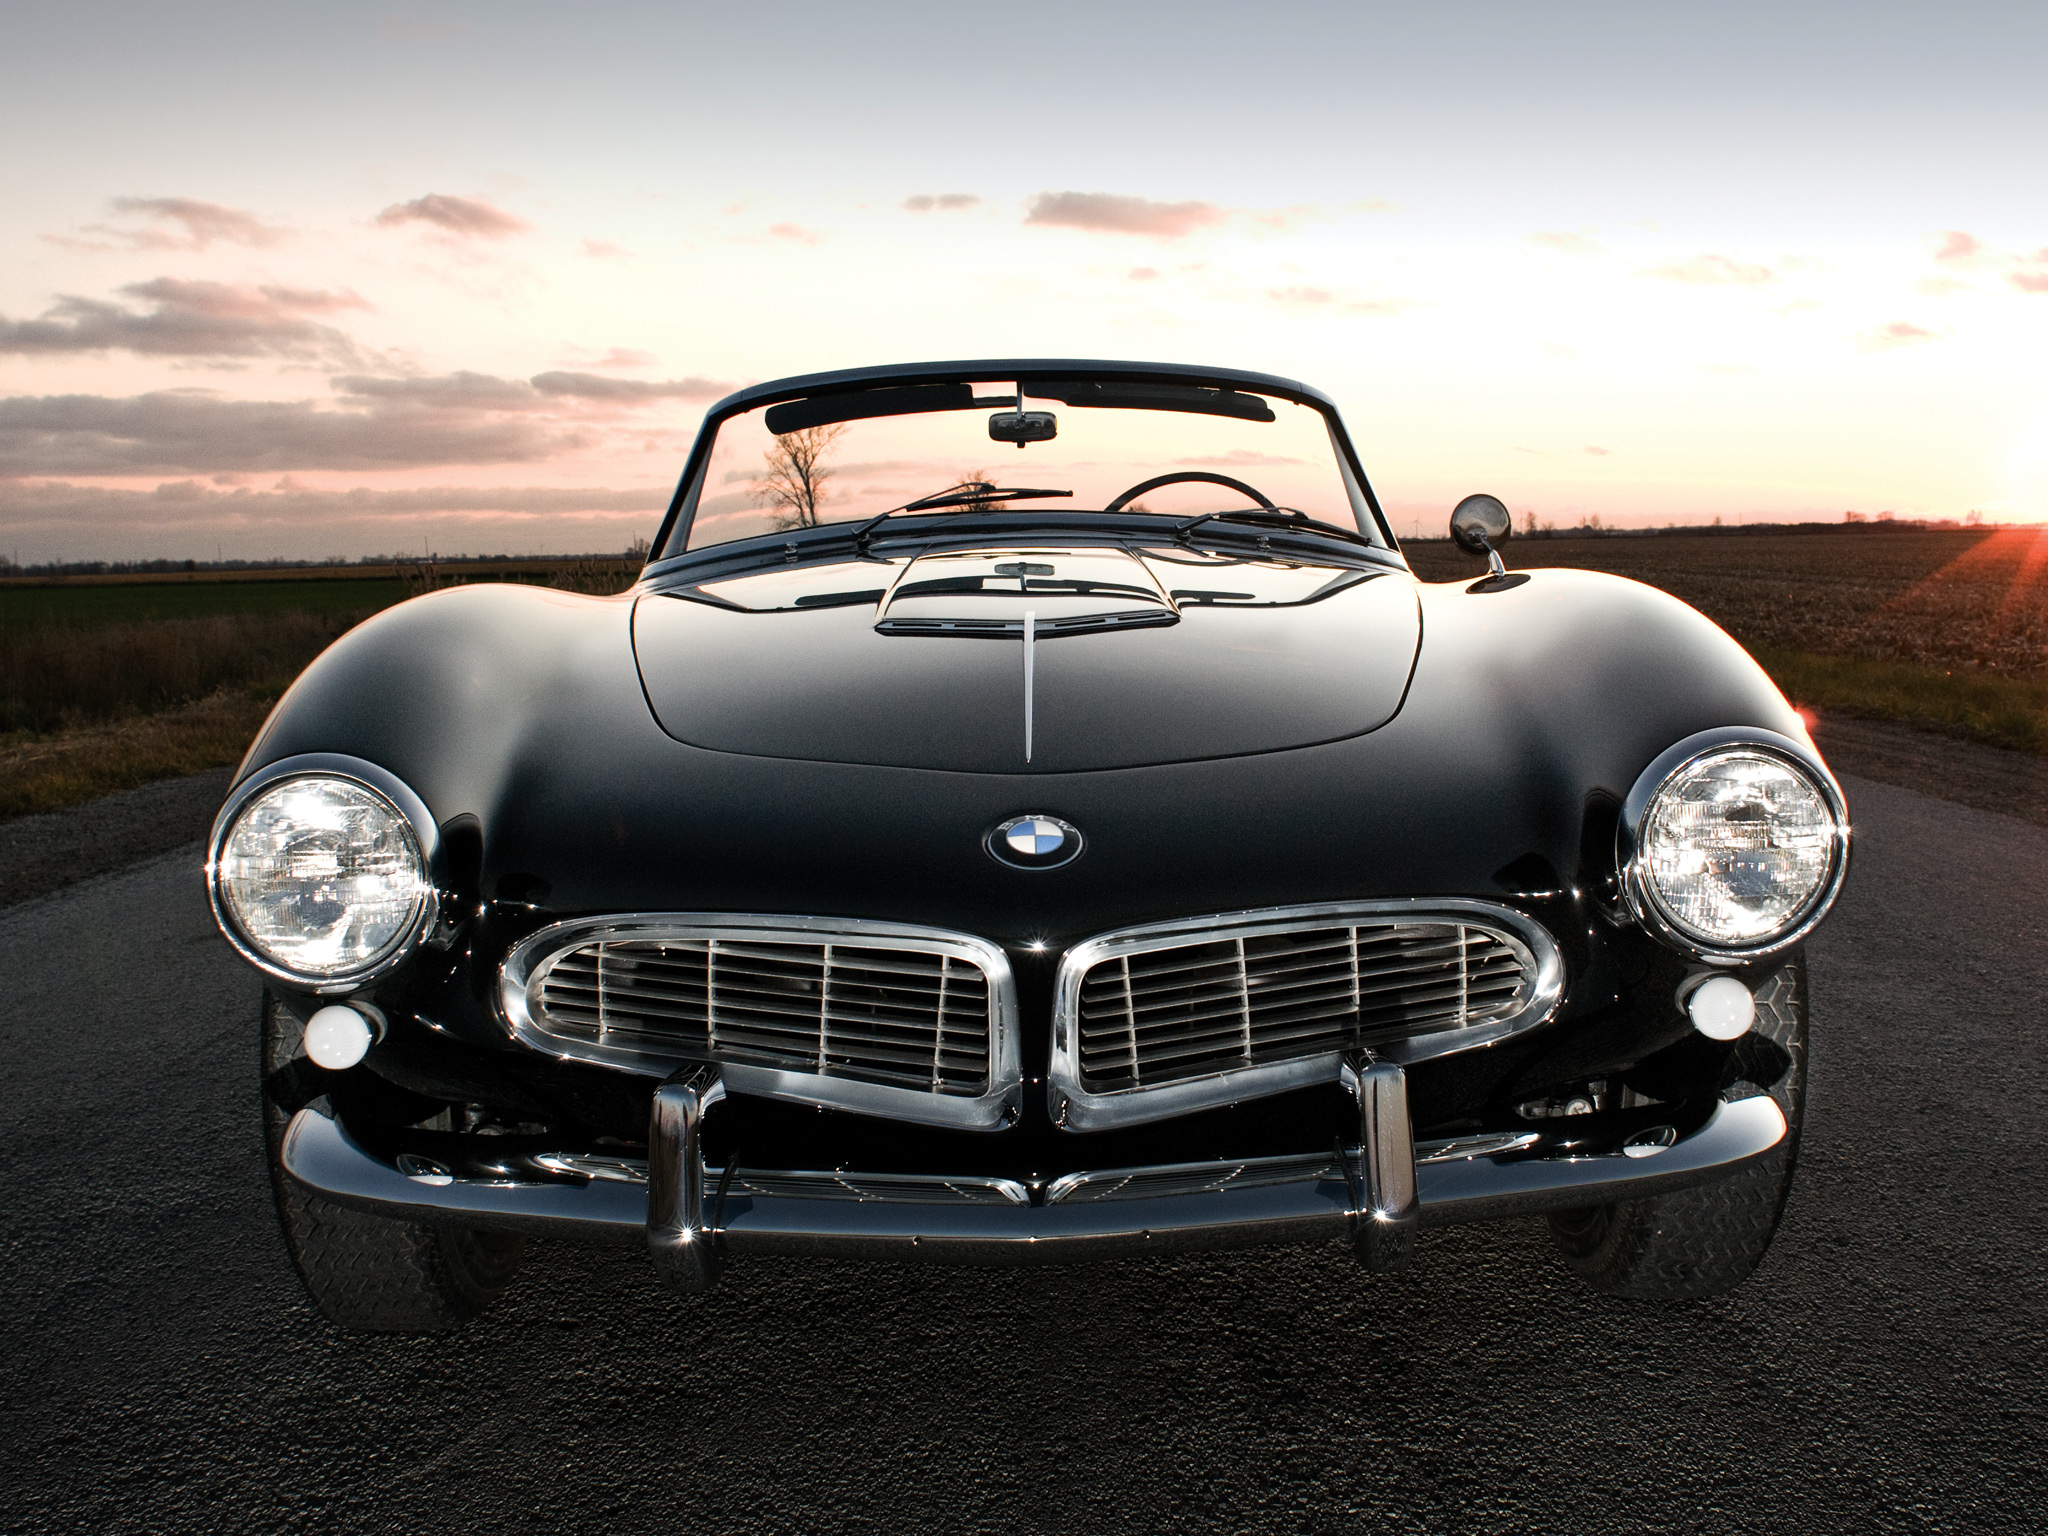 BMW Super Bild Of The Day: BMW 507 Roadster